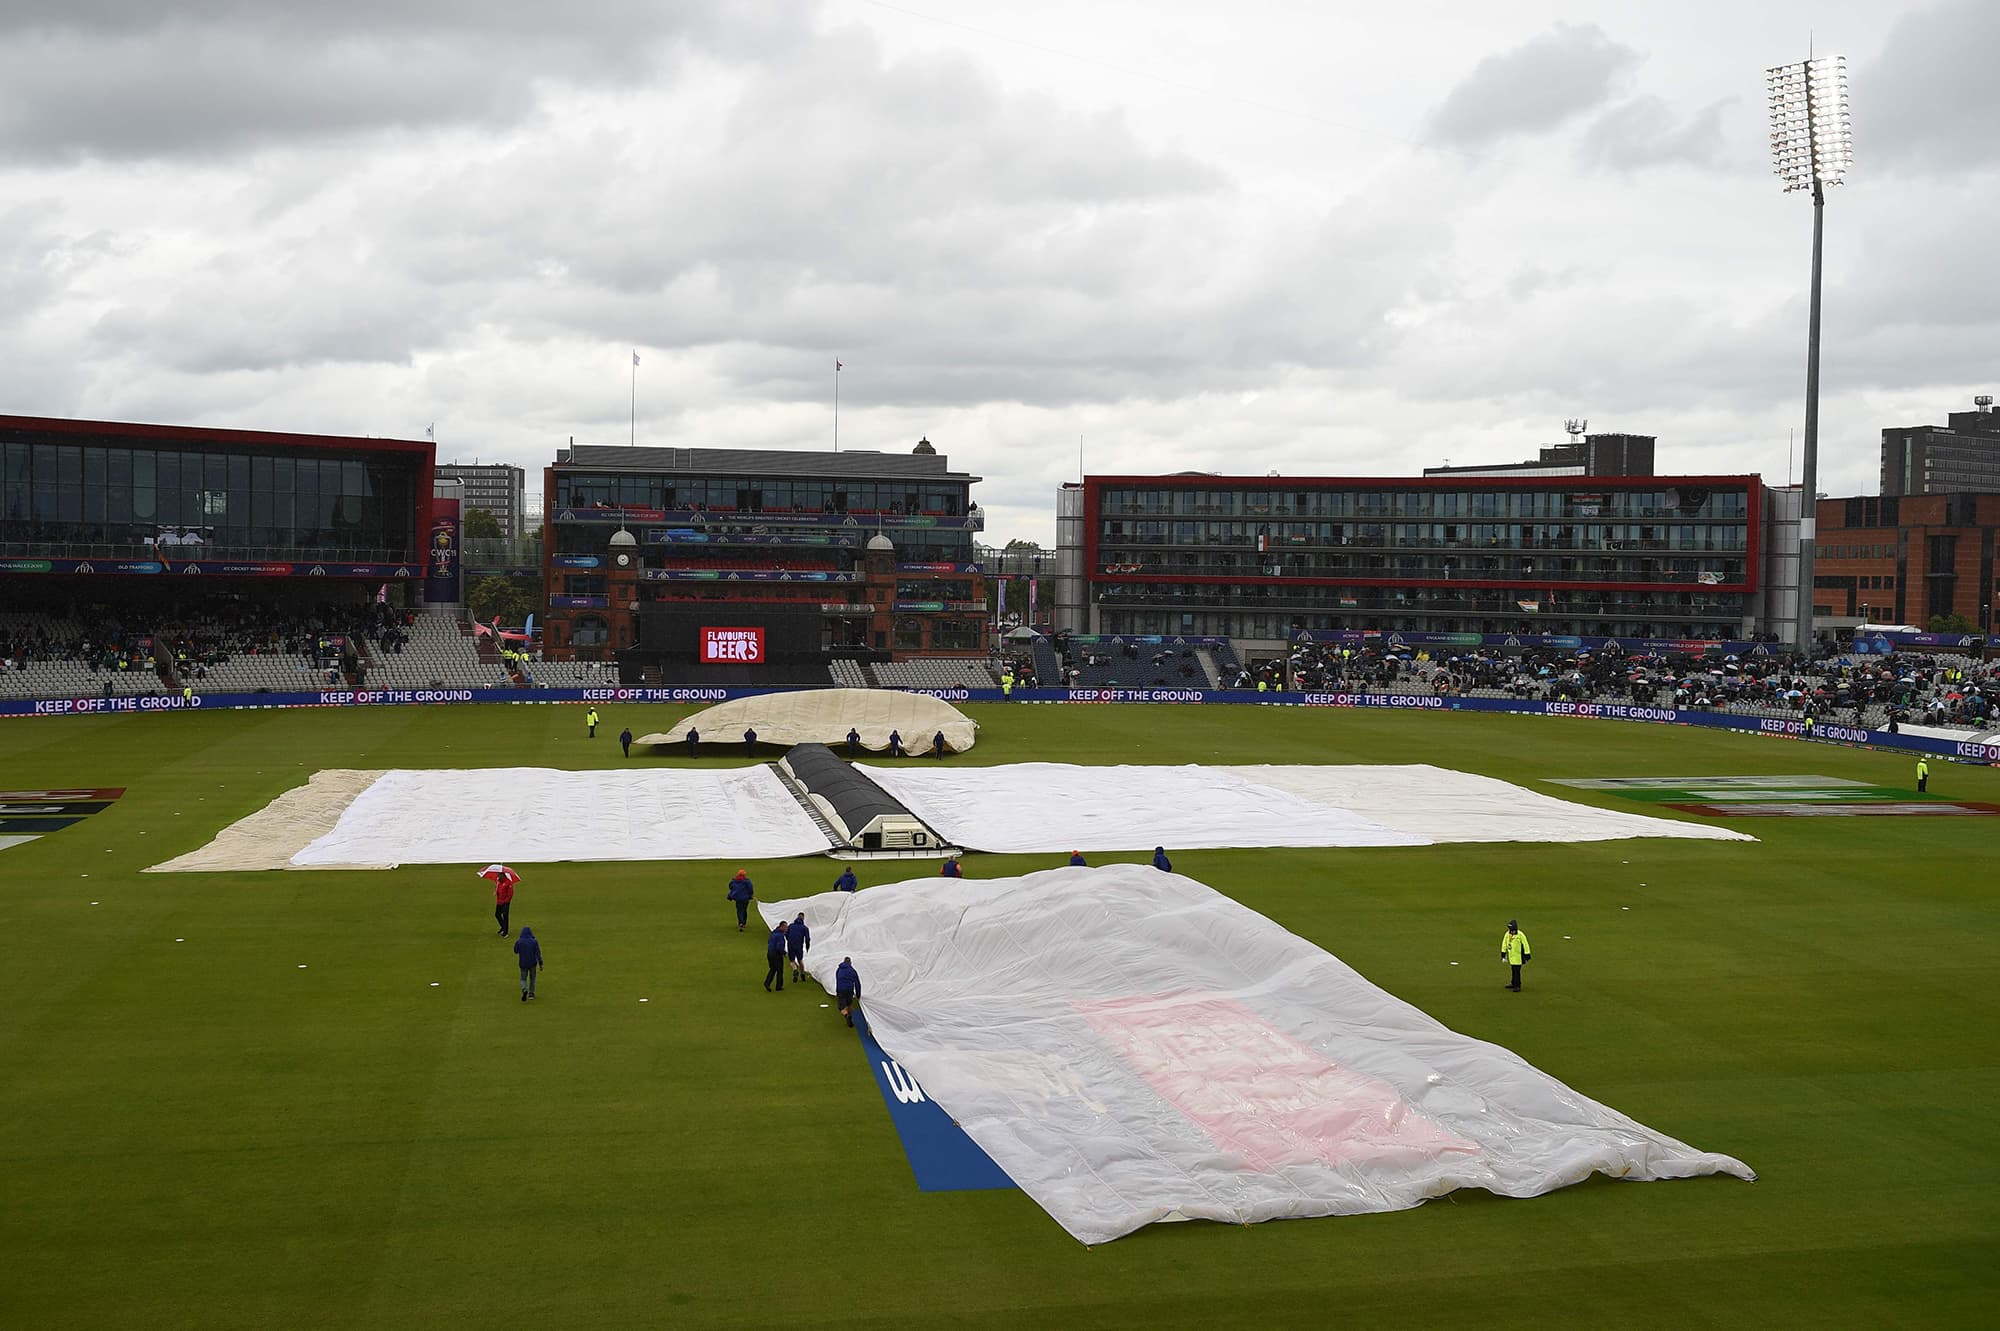 The covers and floodlights are on as rain stops play during the match between India and Pakistan at Old Trafford. — AFP